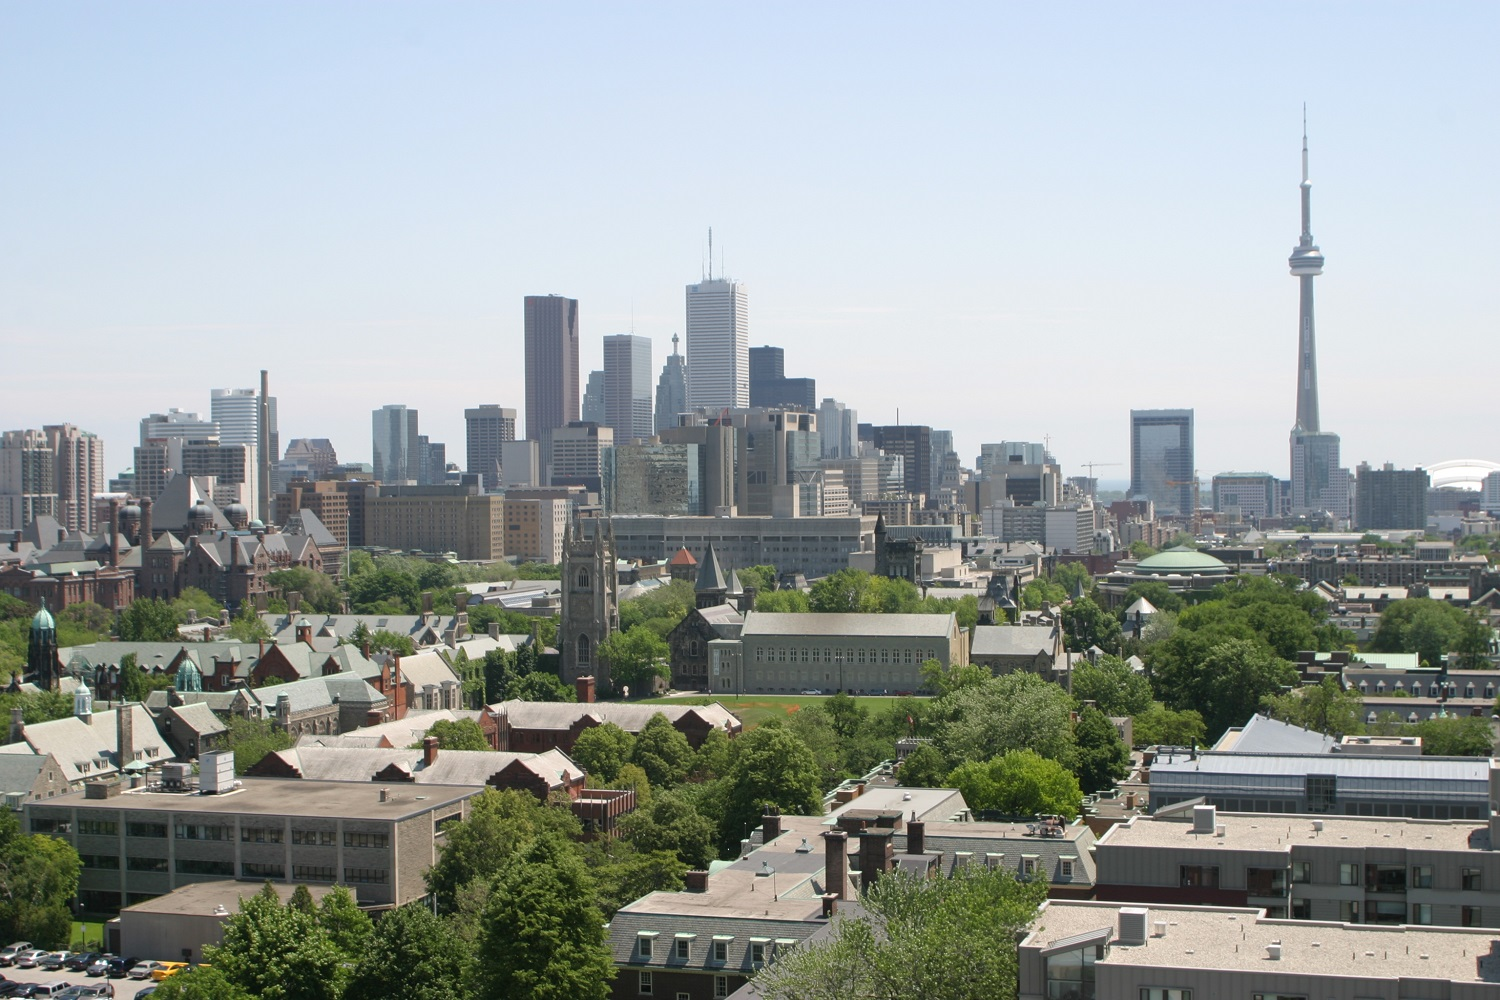 U of T's new School of Cities unites experts to address urban challenges